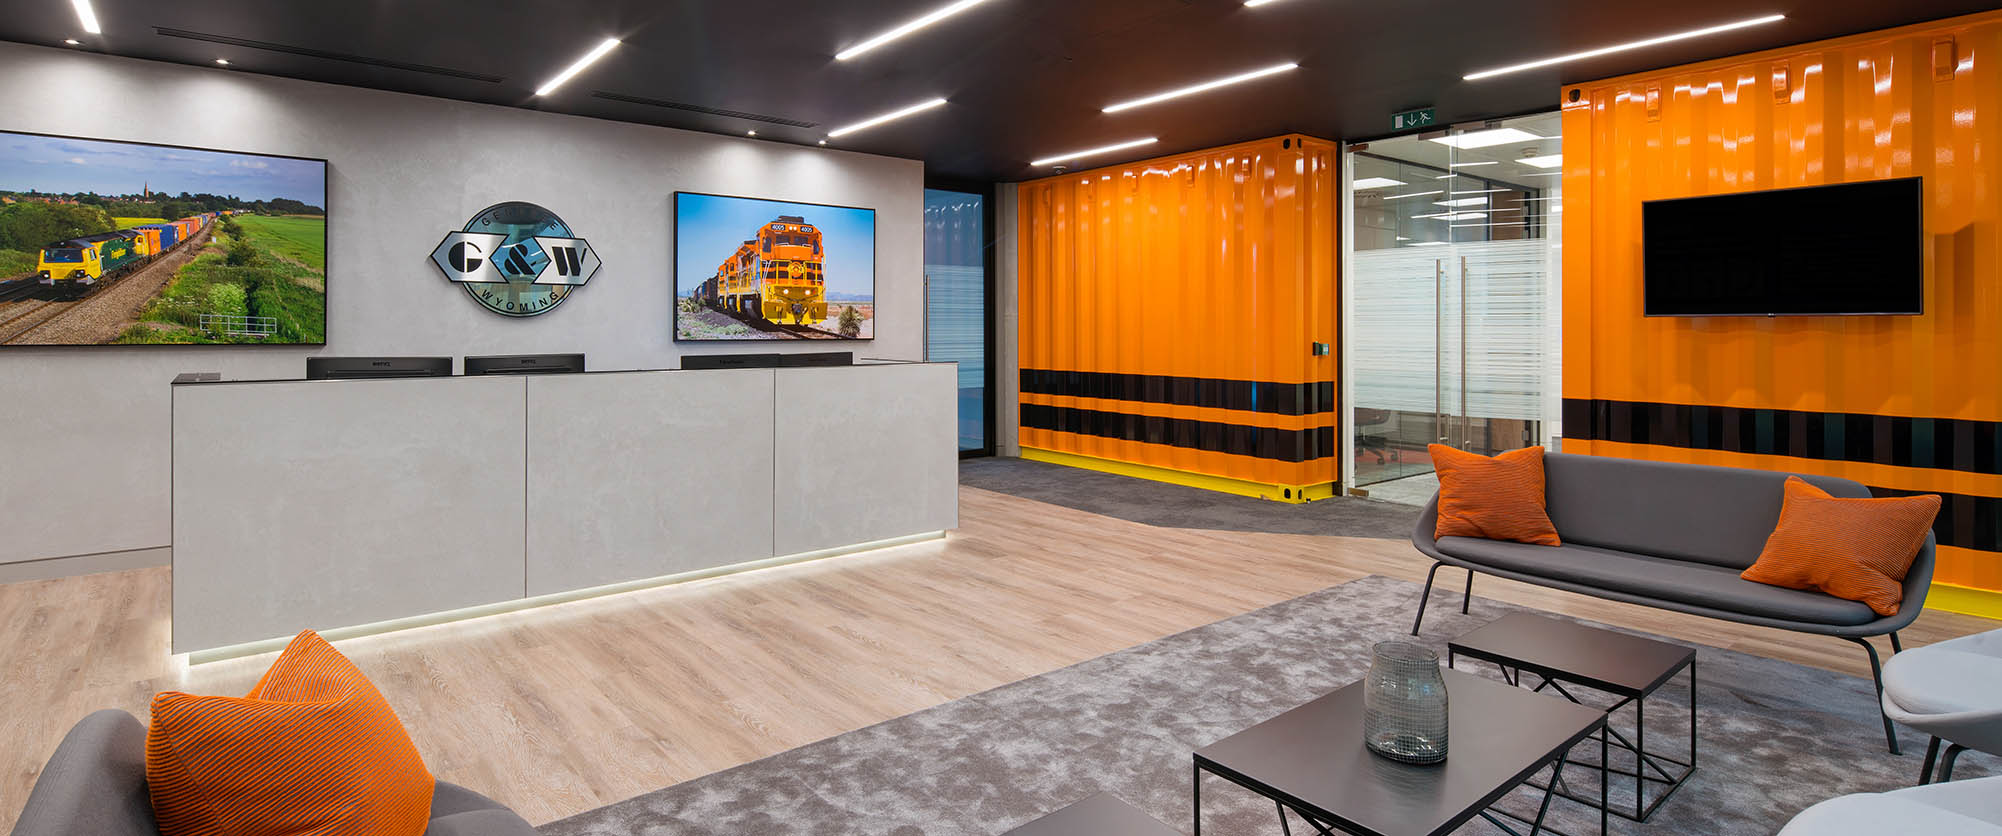 Peldon Rose Transforming London Office Design For 30 Years